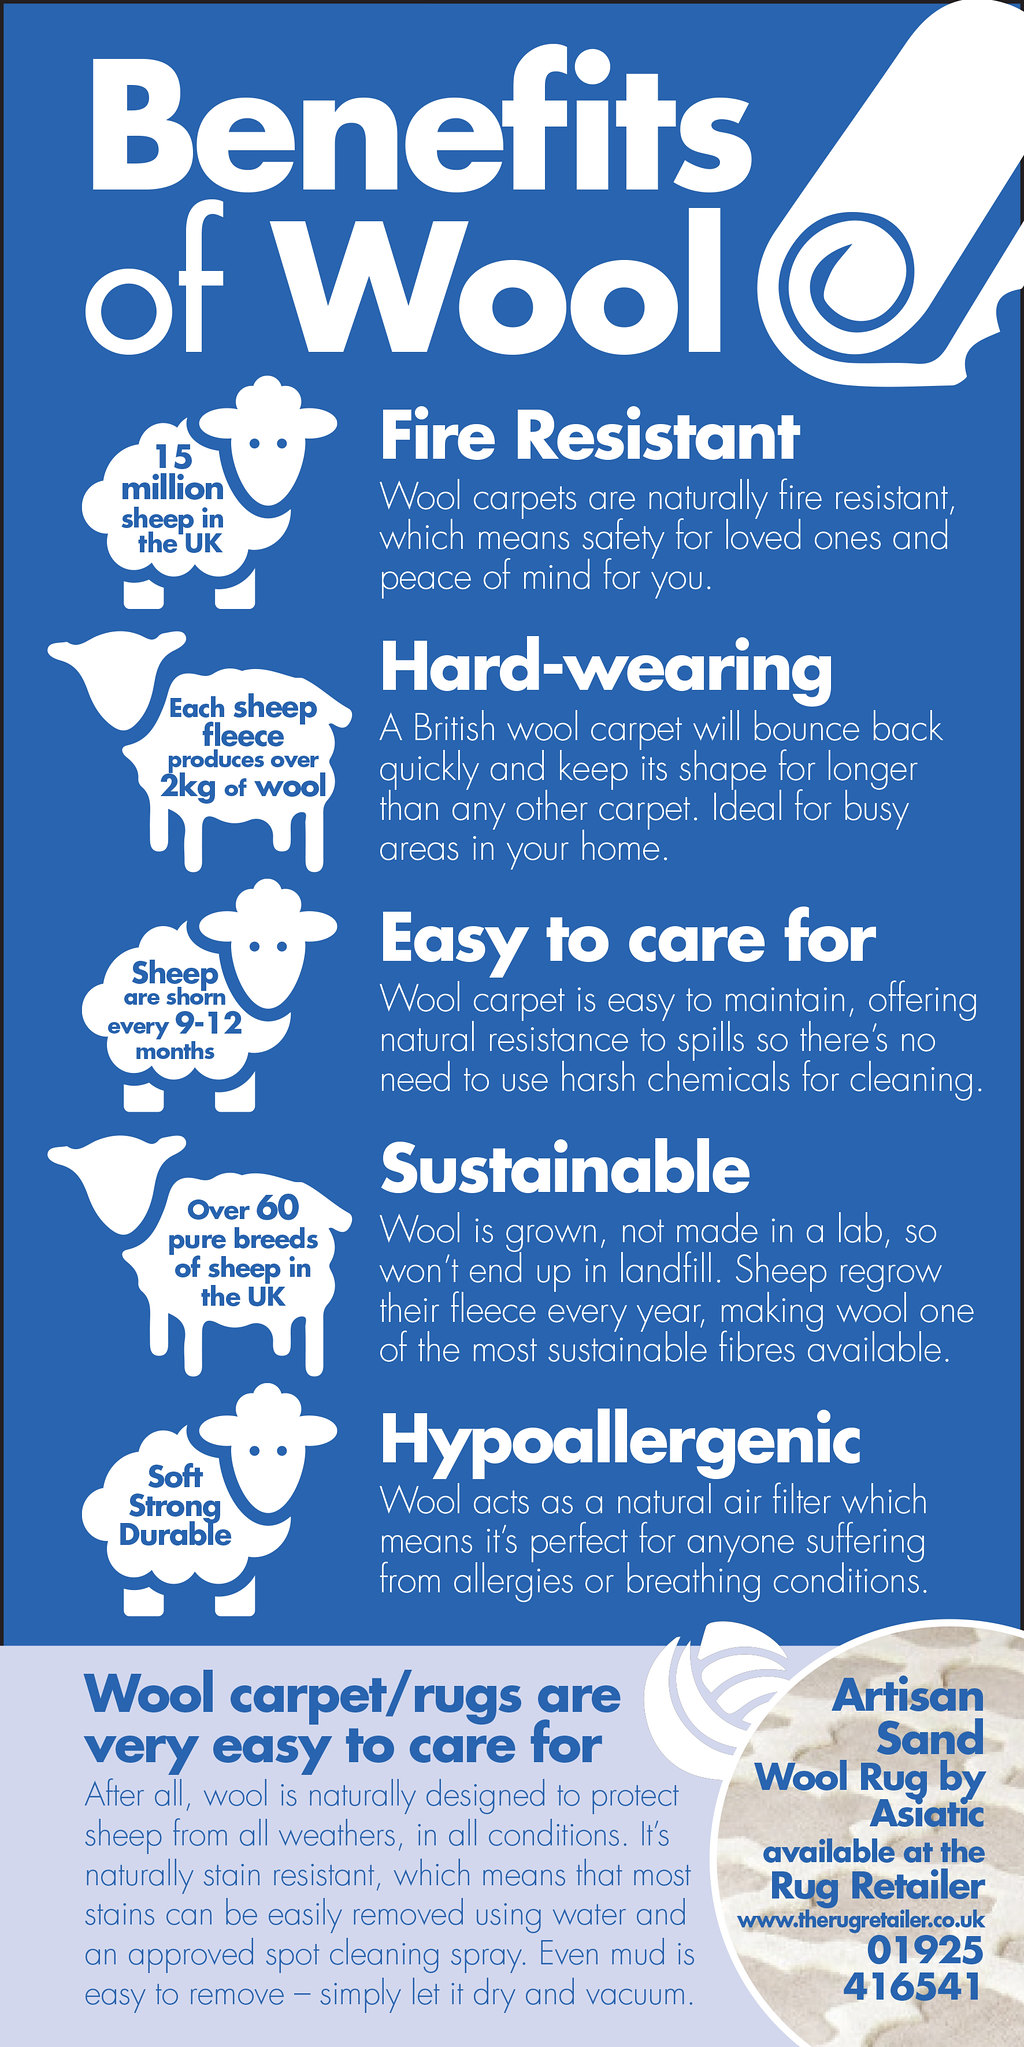 Benefits of Wool